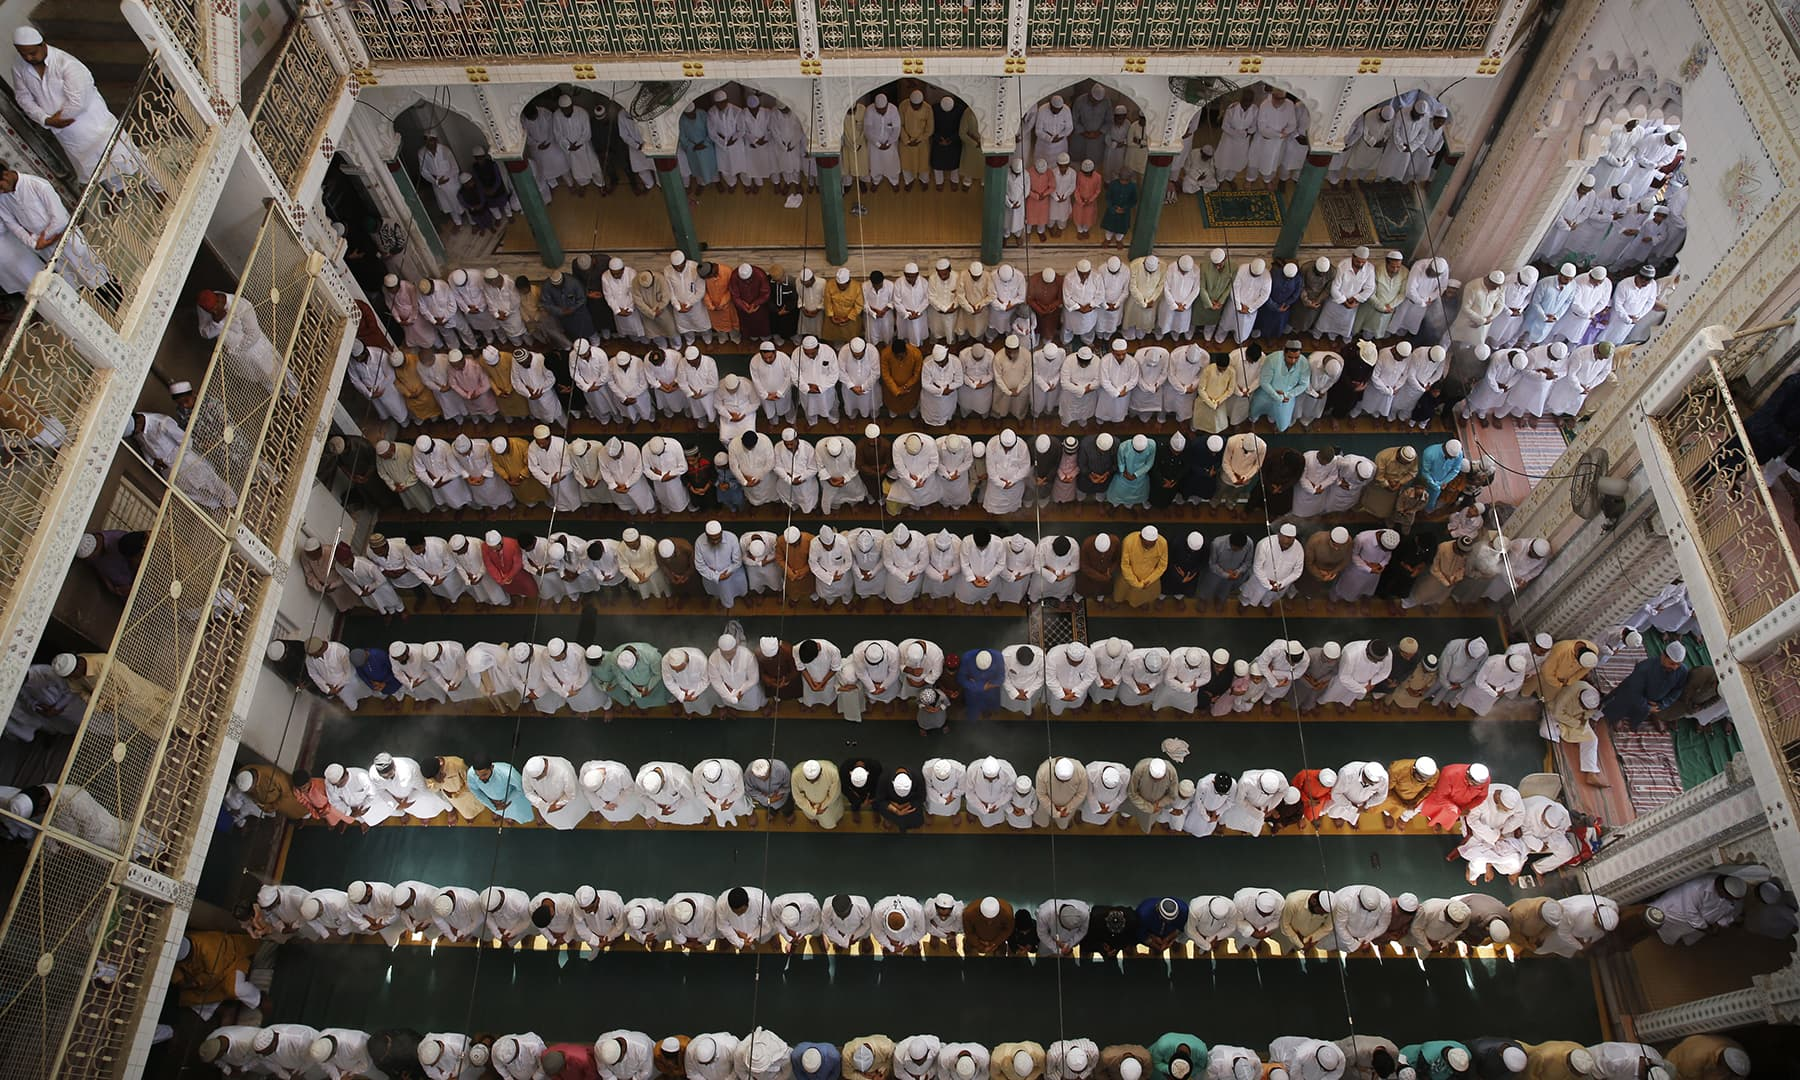 Indian Muslims offer Eidul Fitr prayers at the Vasi Ullah Mosque in Prayagraj on Wednesday, June 5. — AP